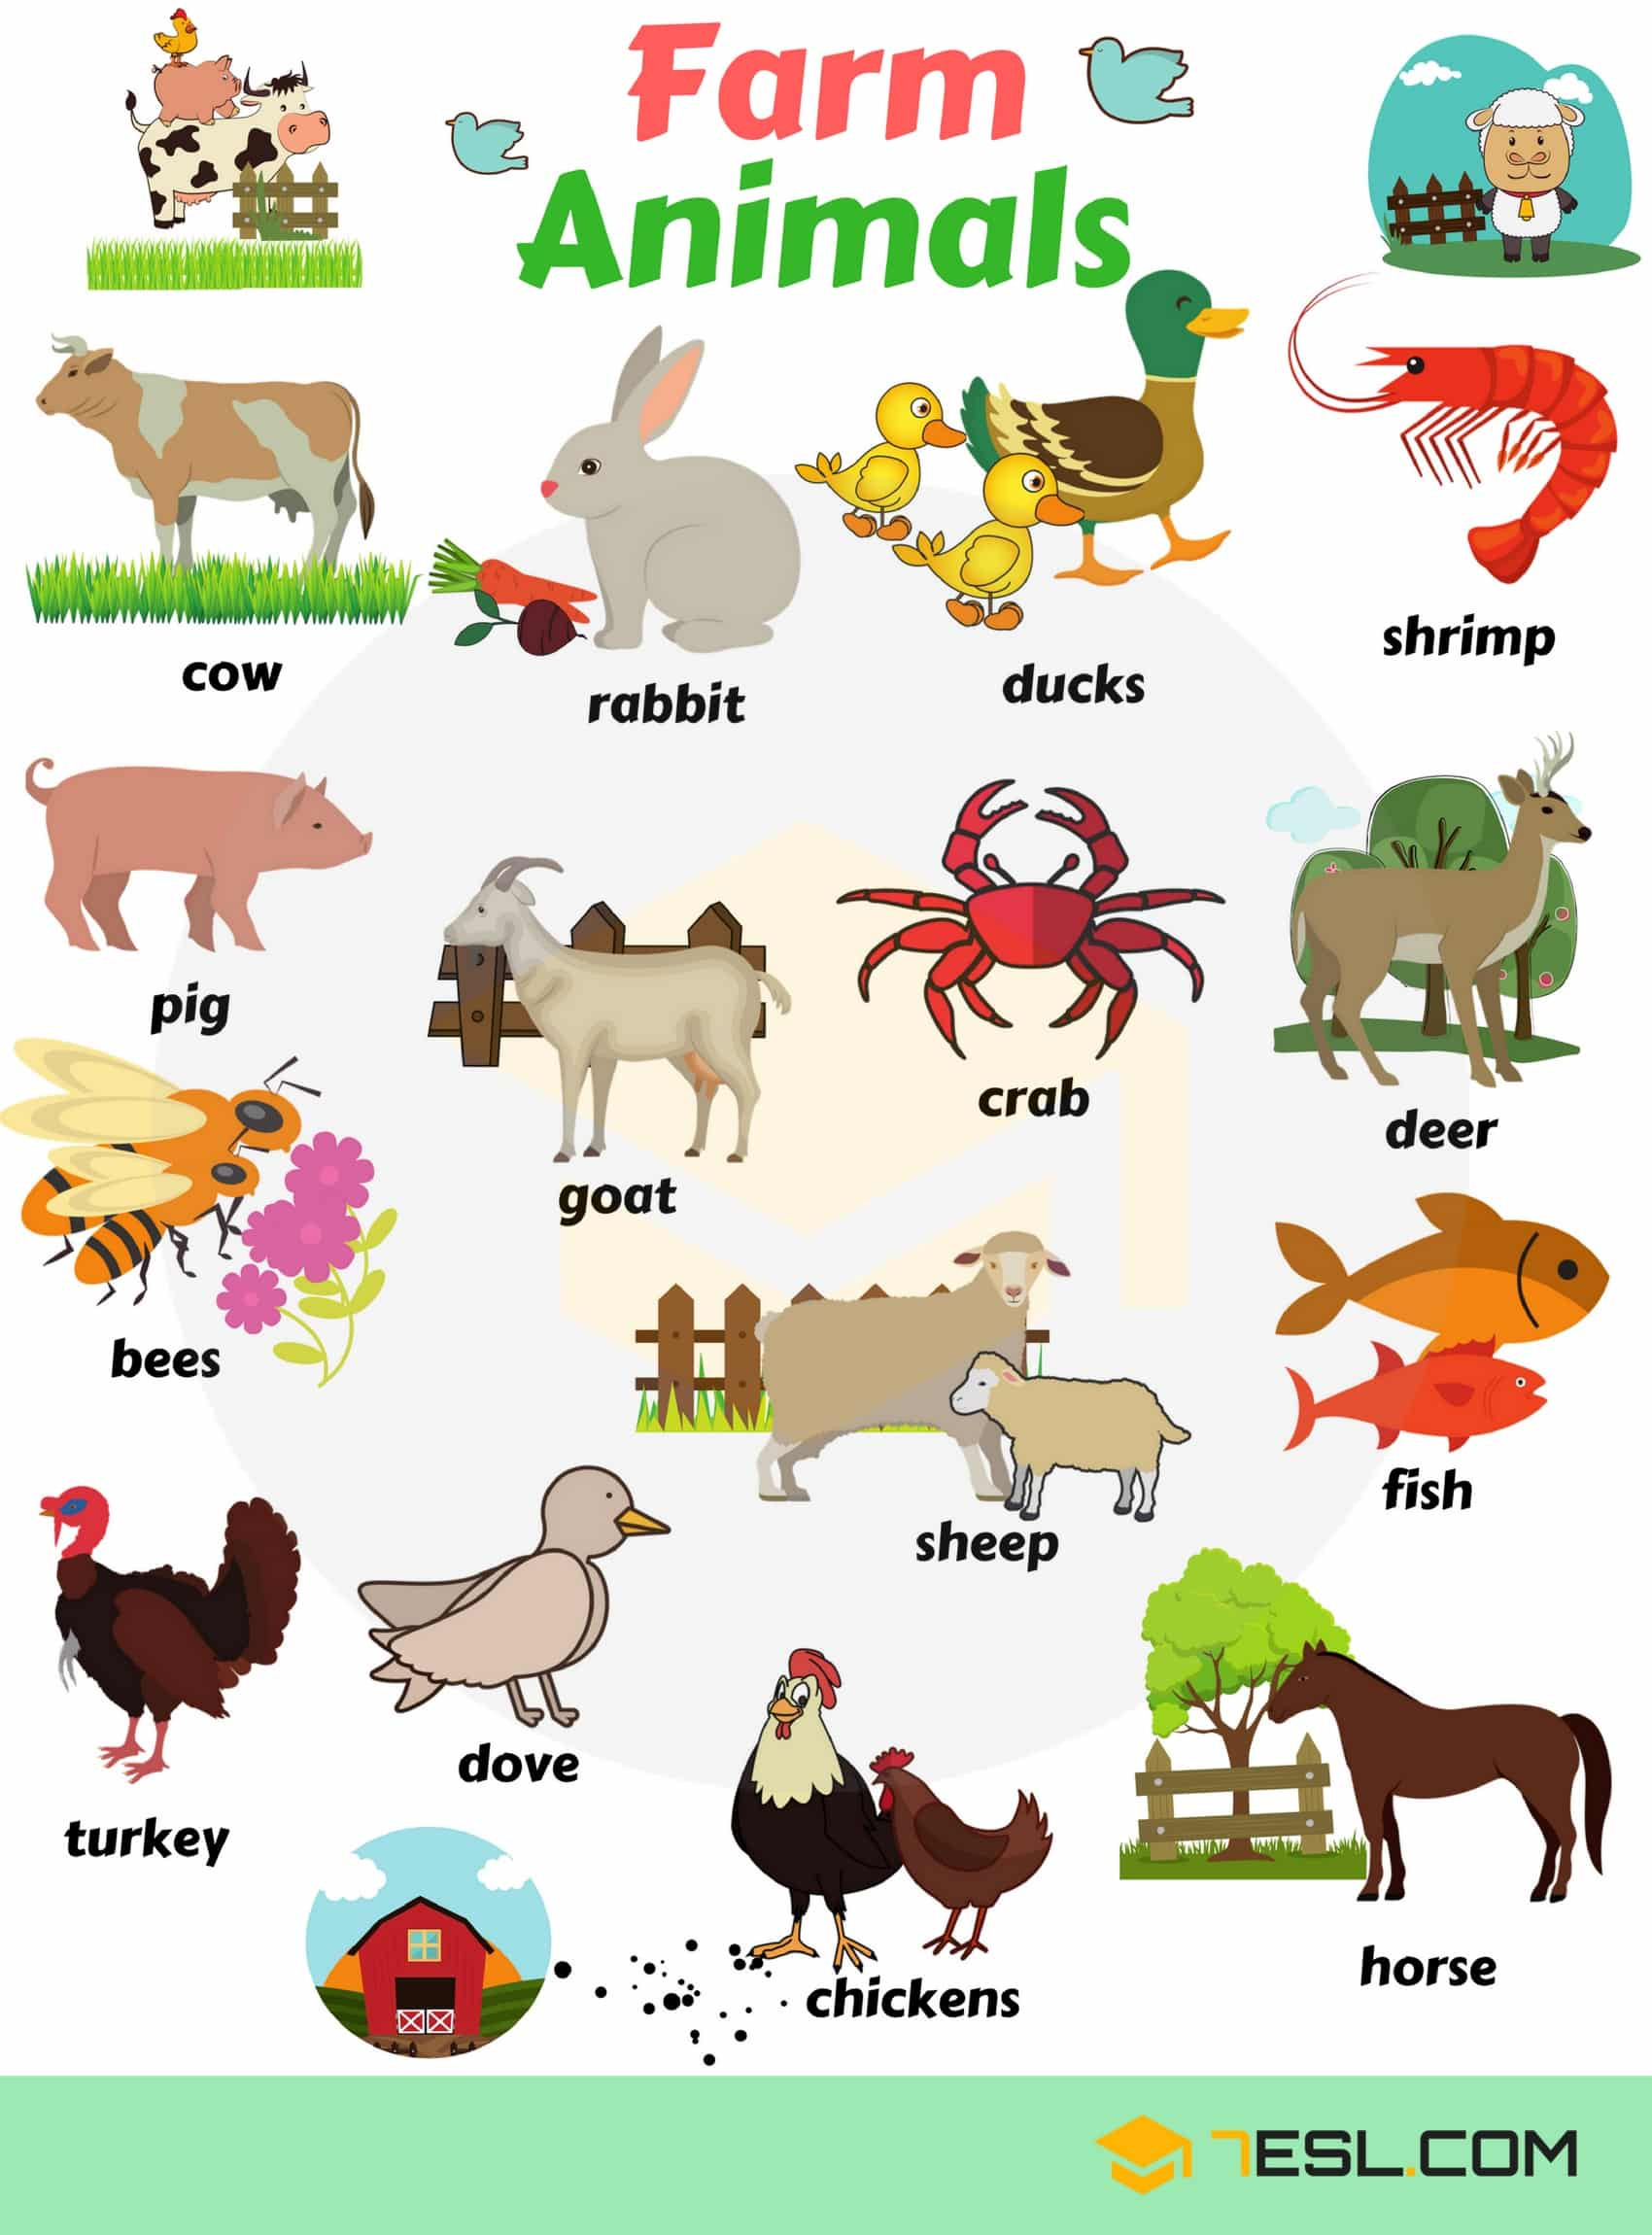 Farm Animal Names | Image